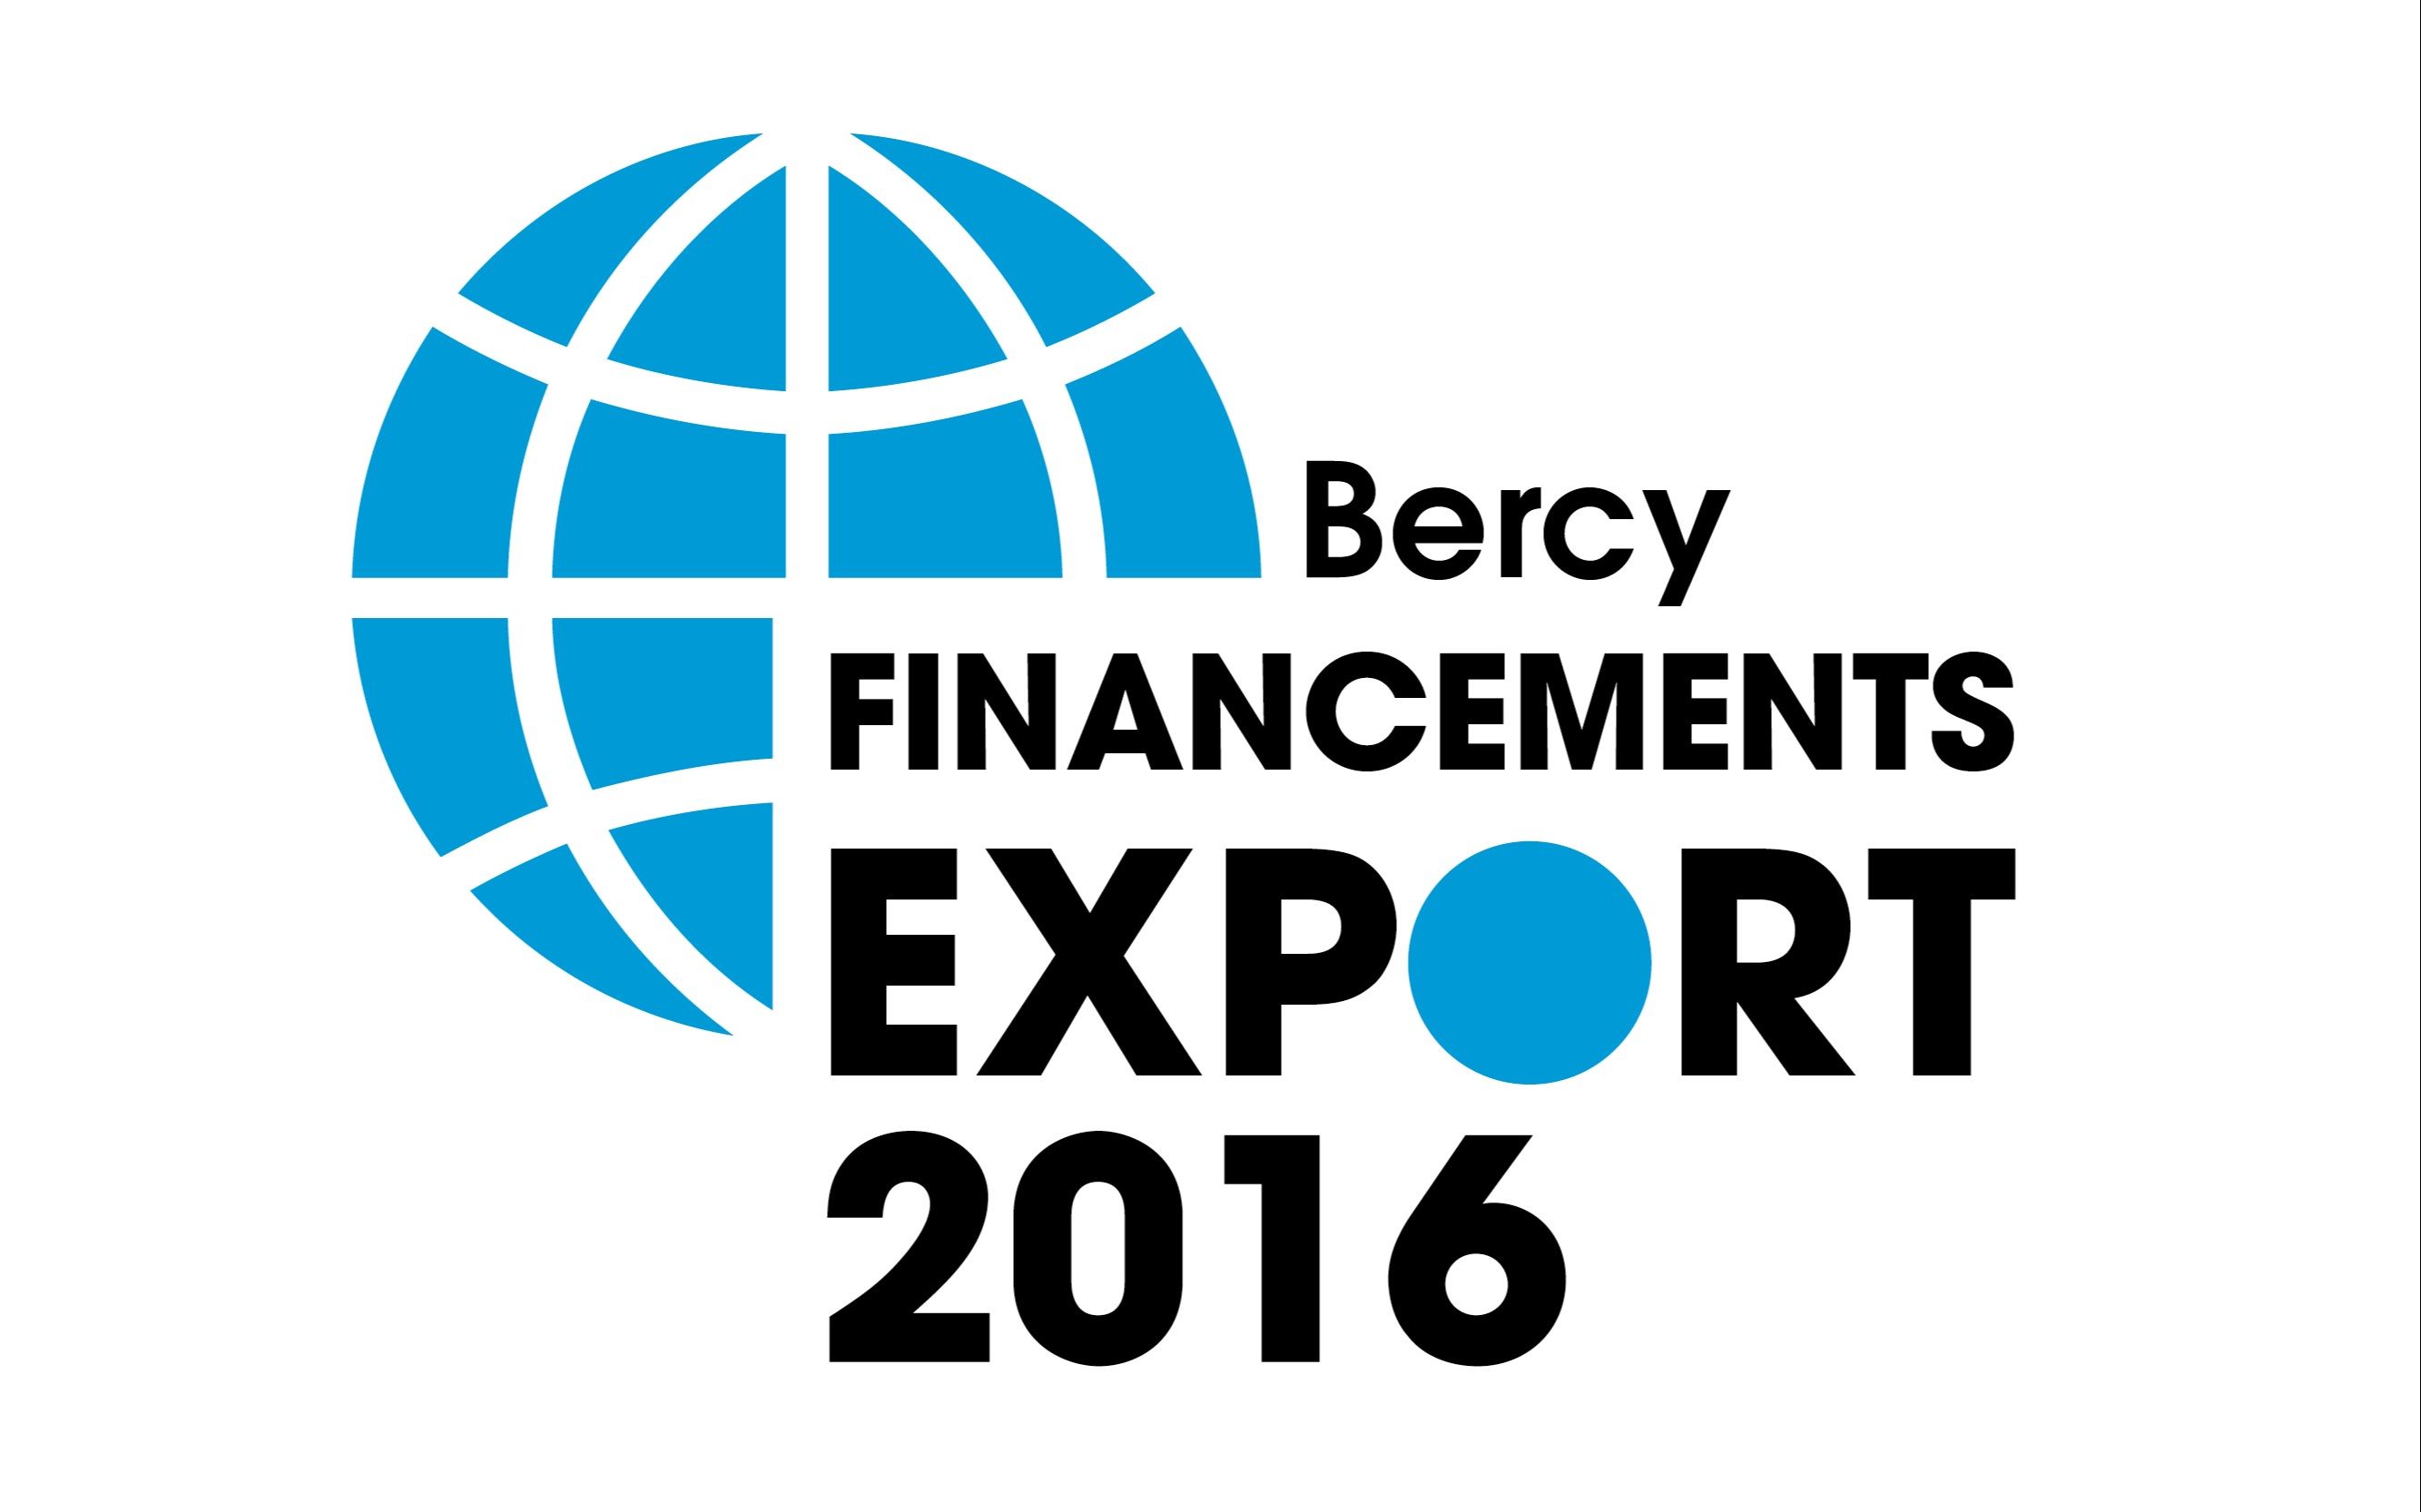 Bercy Financements Export 2016